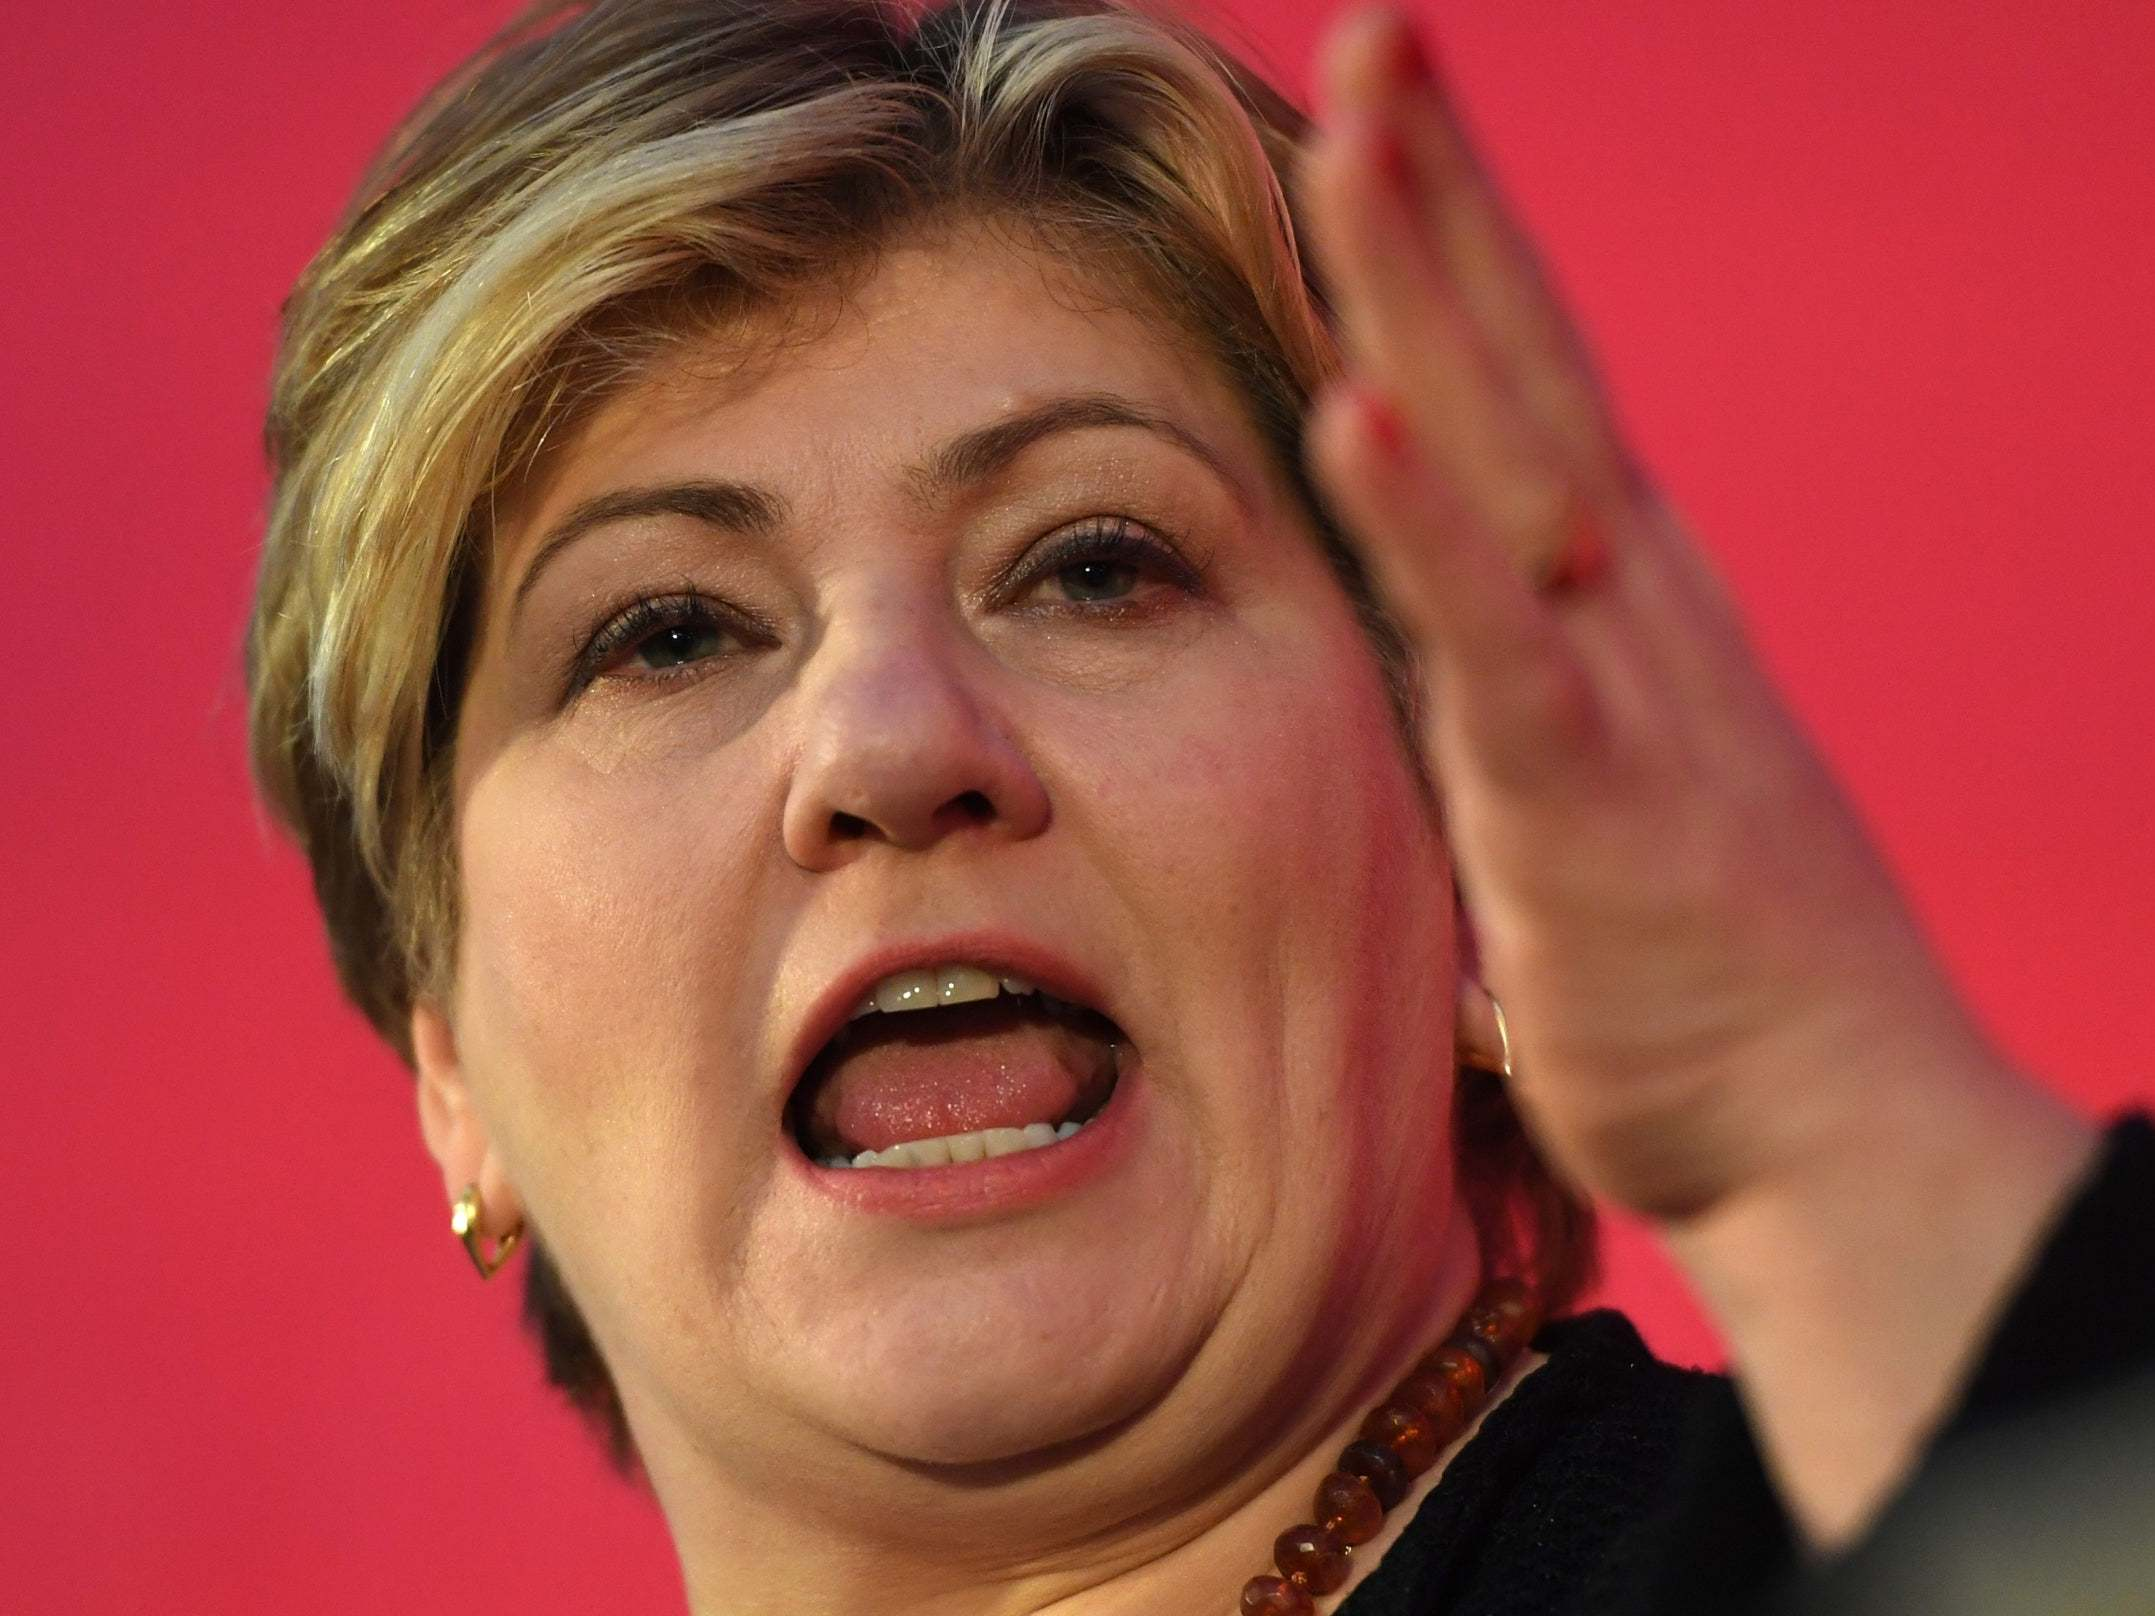 Labour leadership: Landlords should be stripped of empty homes, says Emily Thornberry